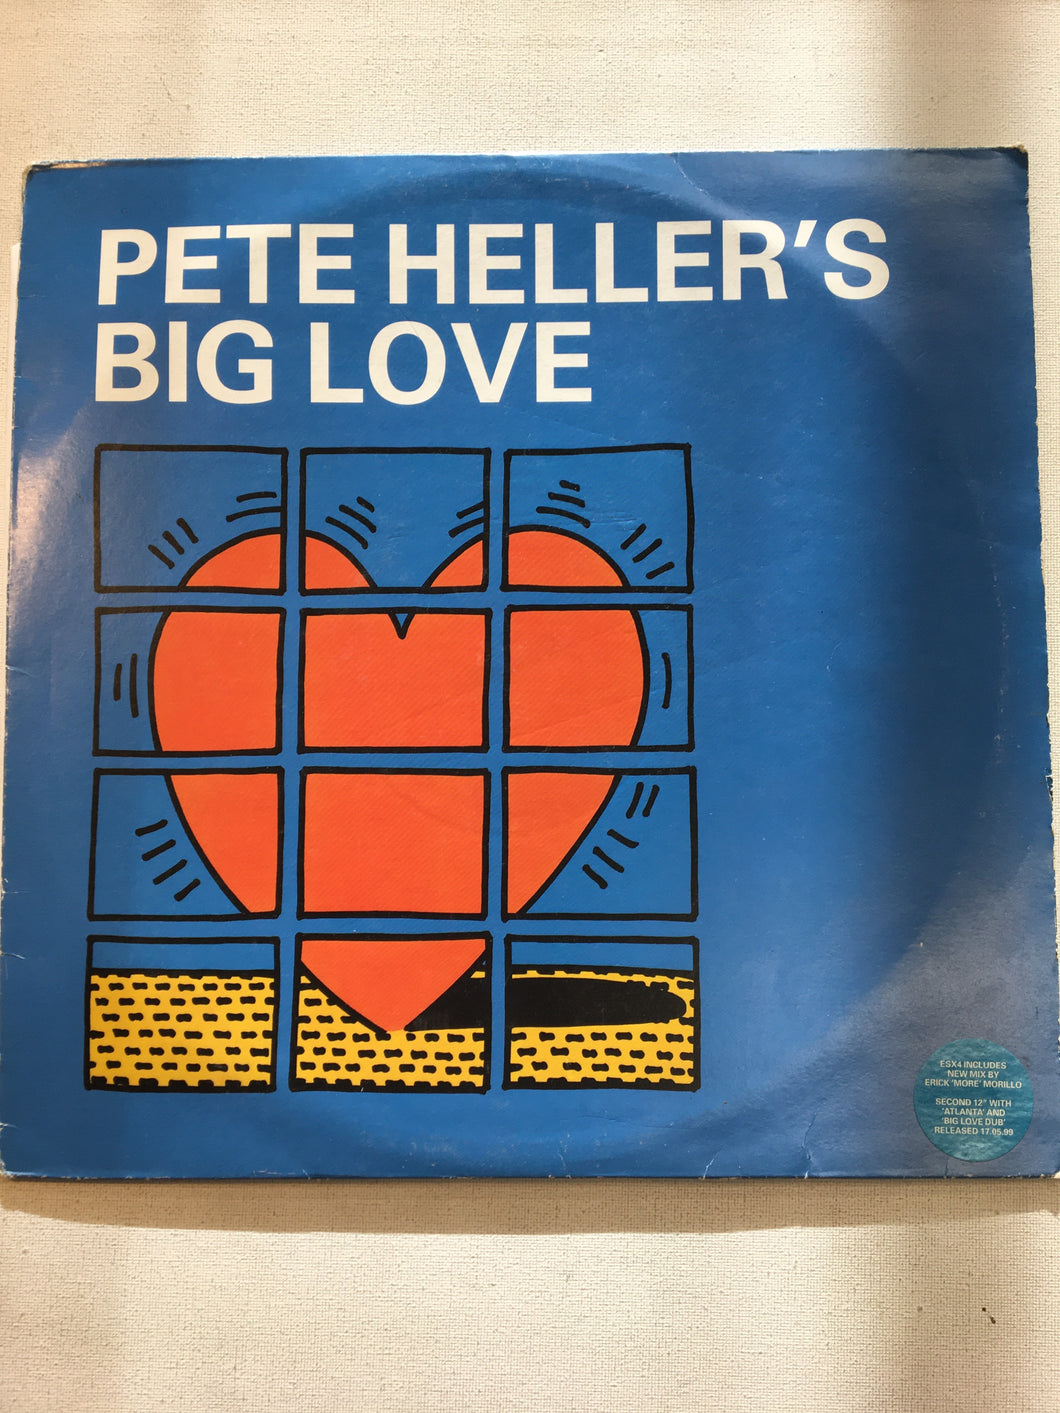 "PETE HELLER 12"" ; PETE HELLER'S BIG LOVE"